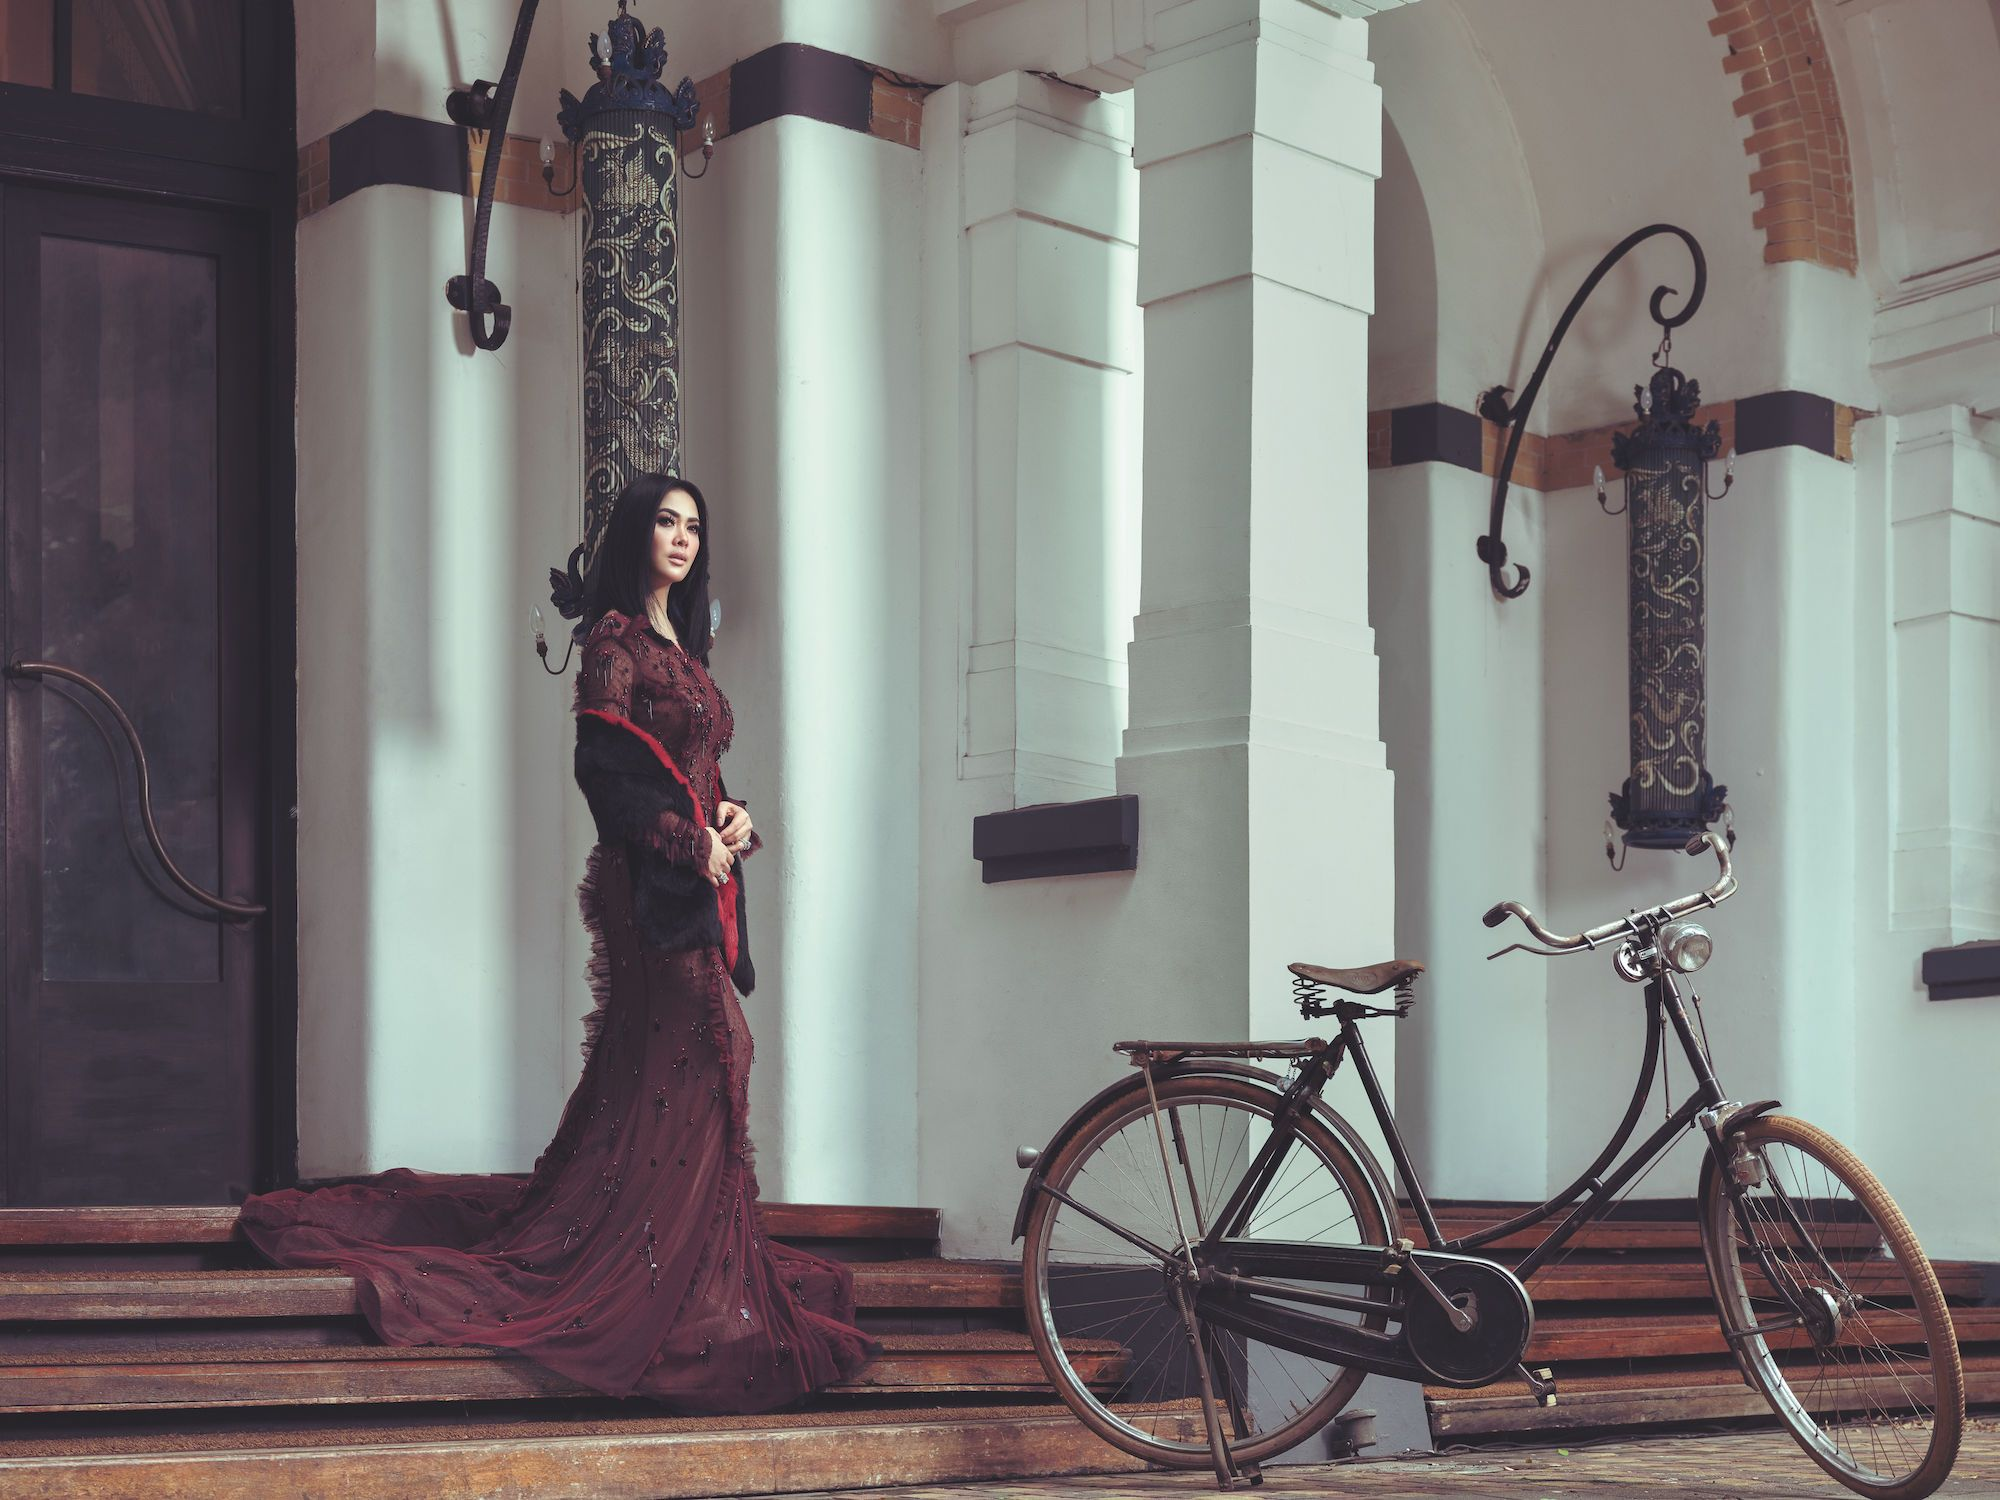 Source: Raja Siregar for Indonesia Tatler